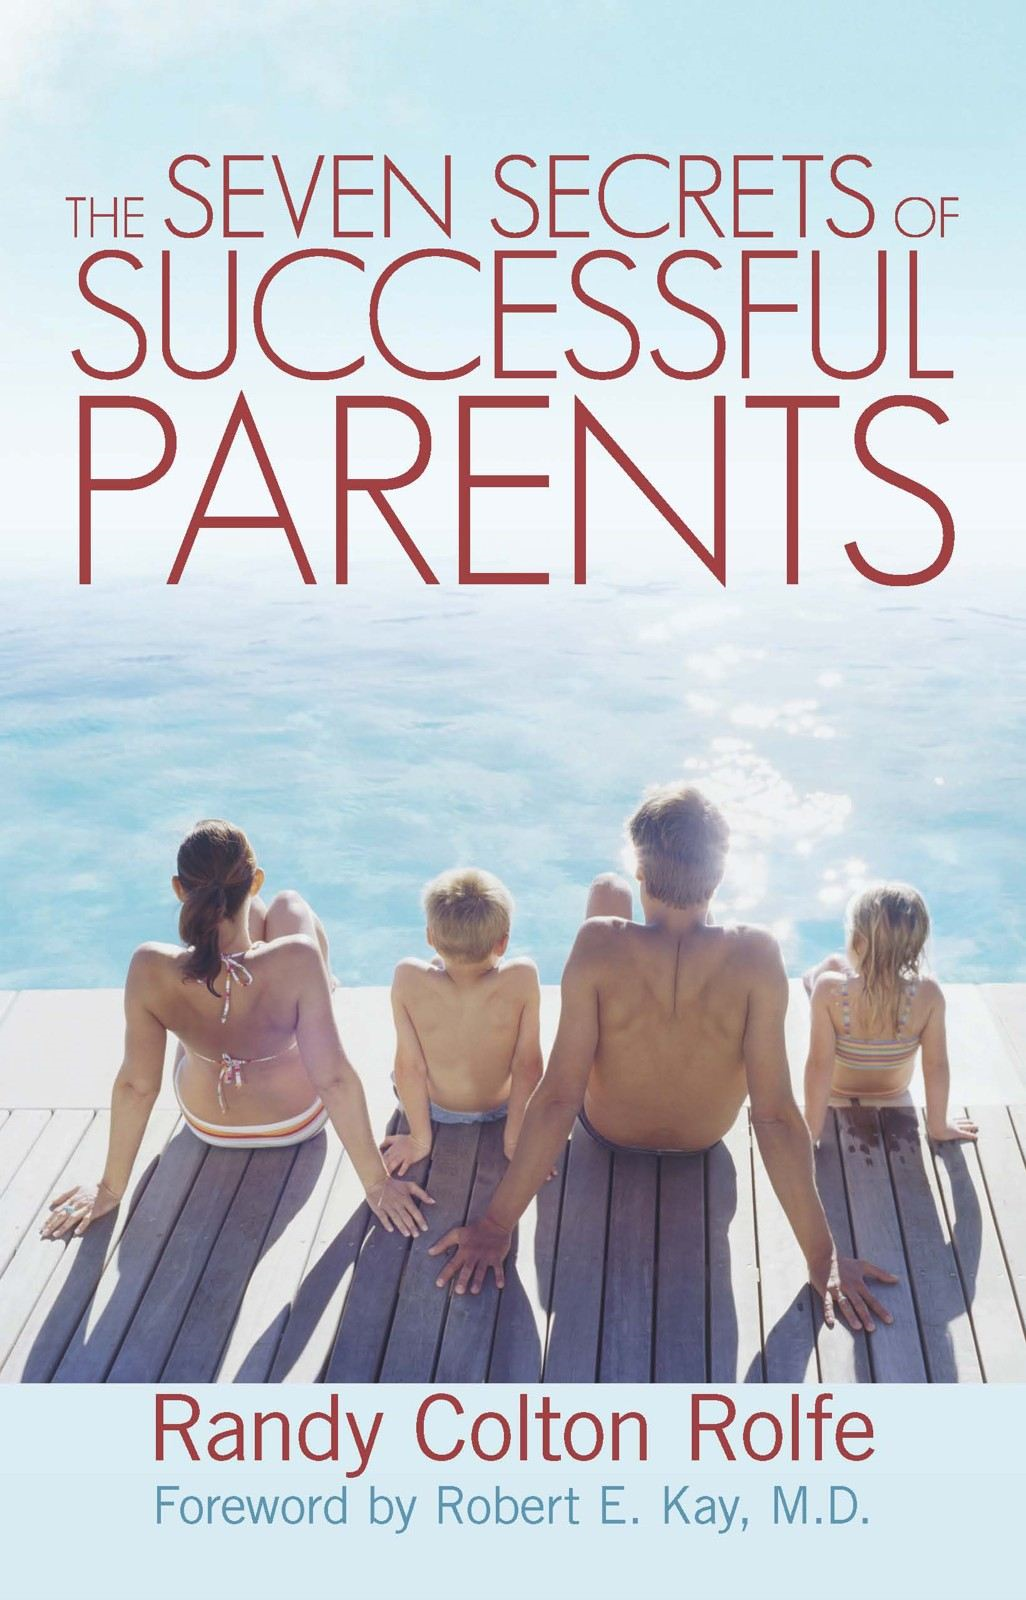 The Seven Secrets of Successful Parents